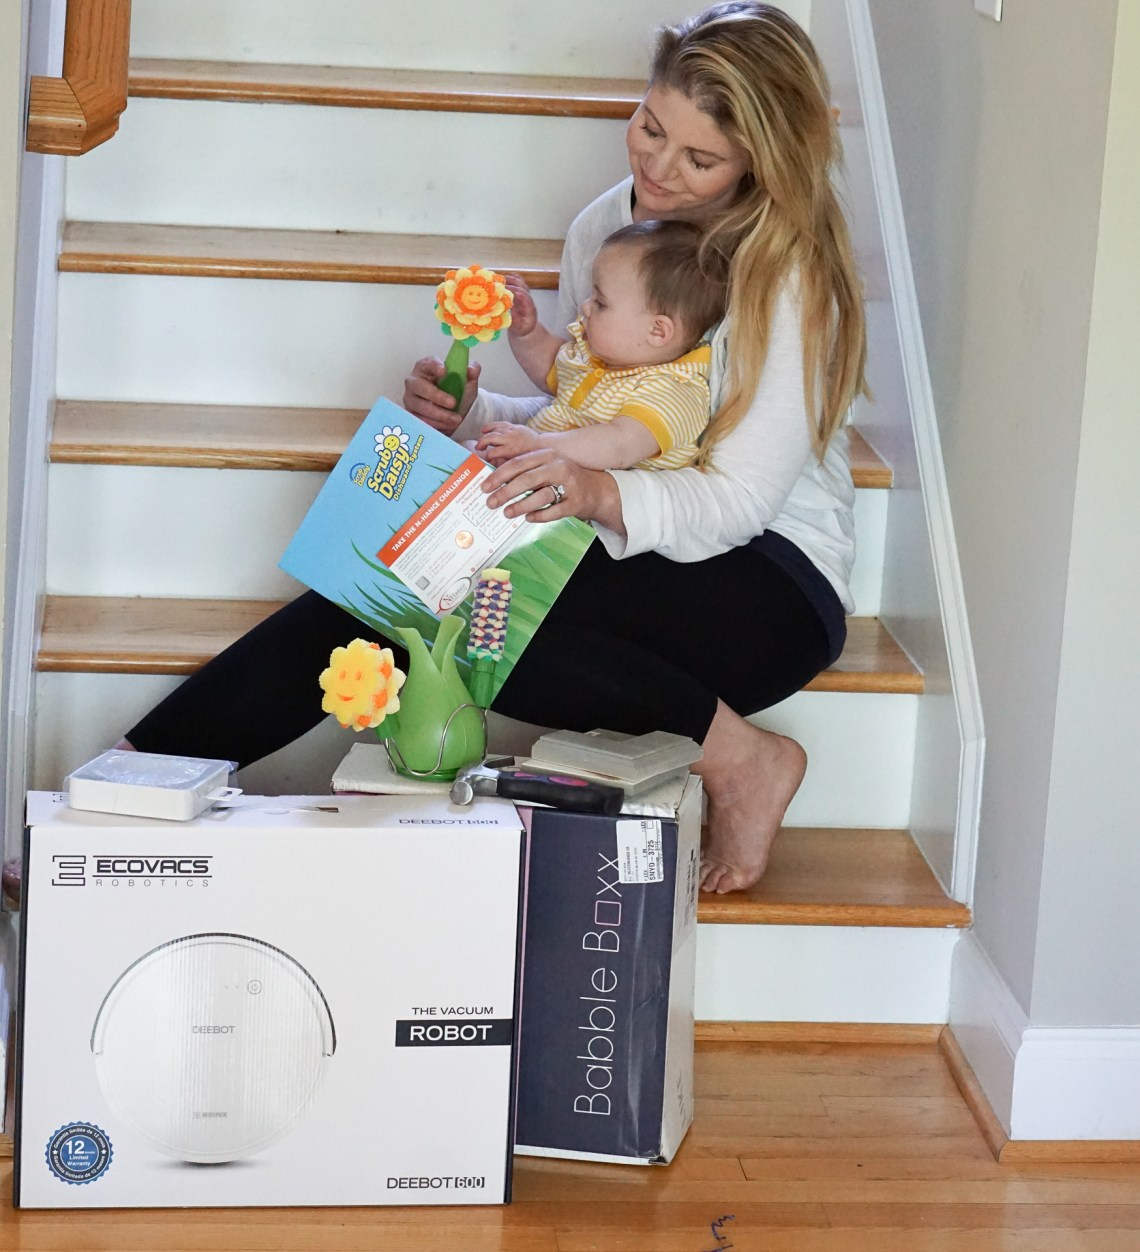 Spring Cleaning Supplies- Handy Helpers to Make Your Cleaning Routine Faster and Easier